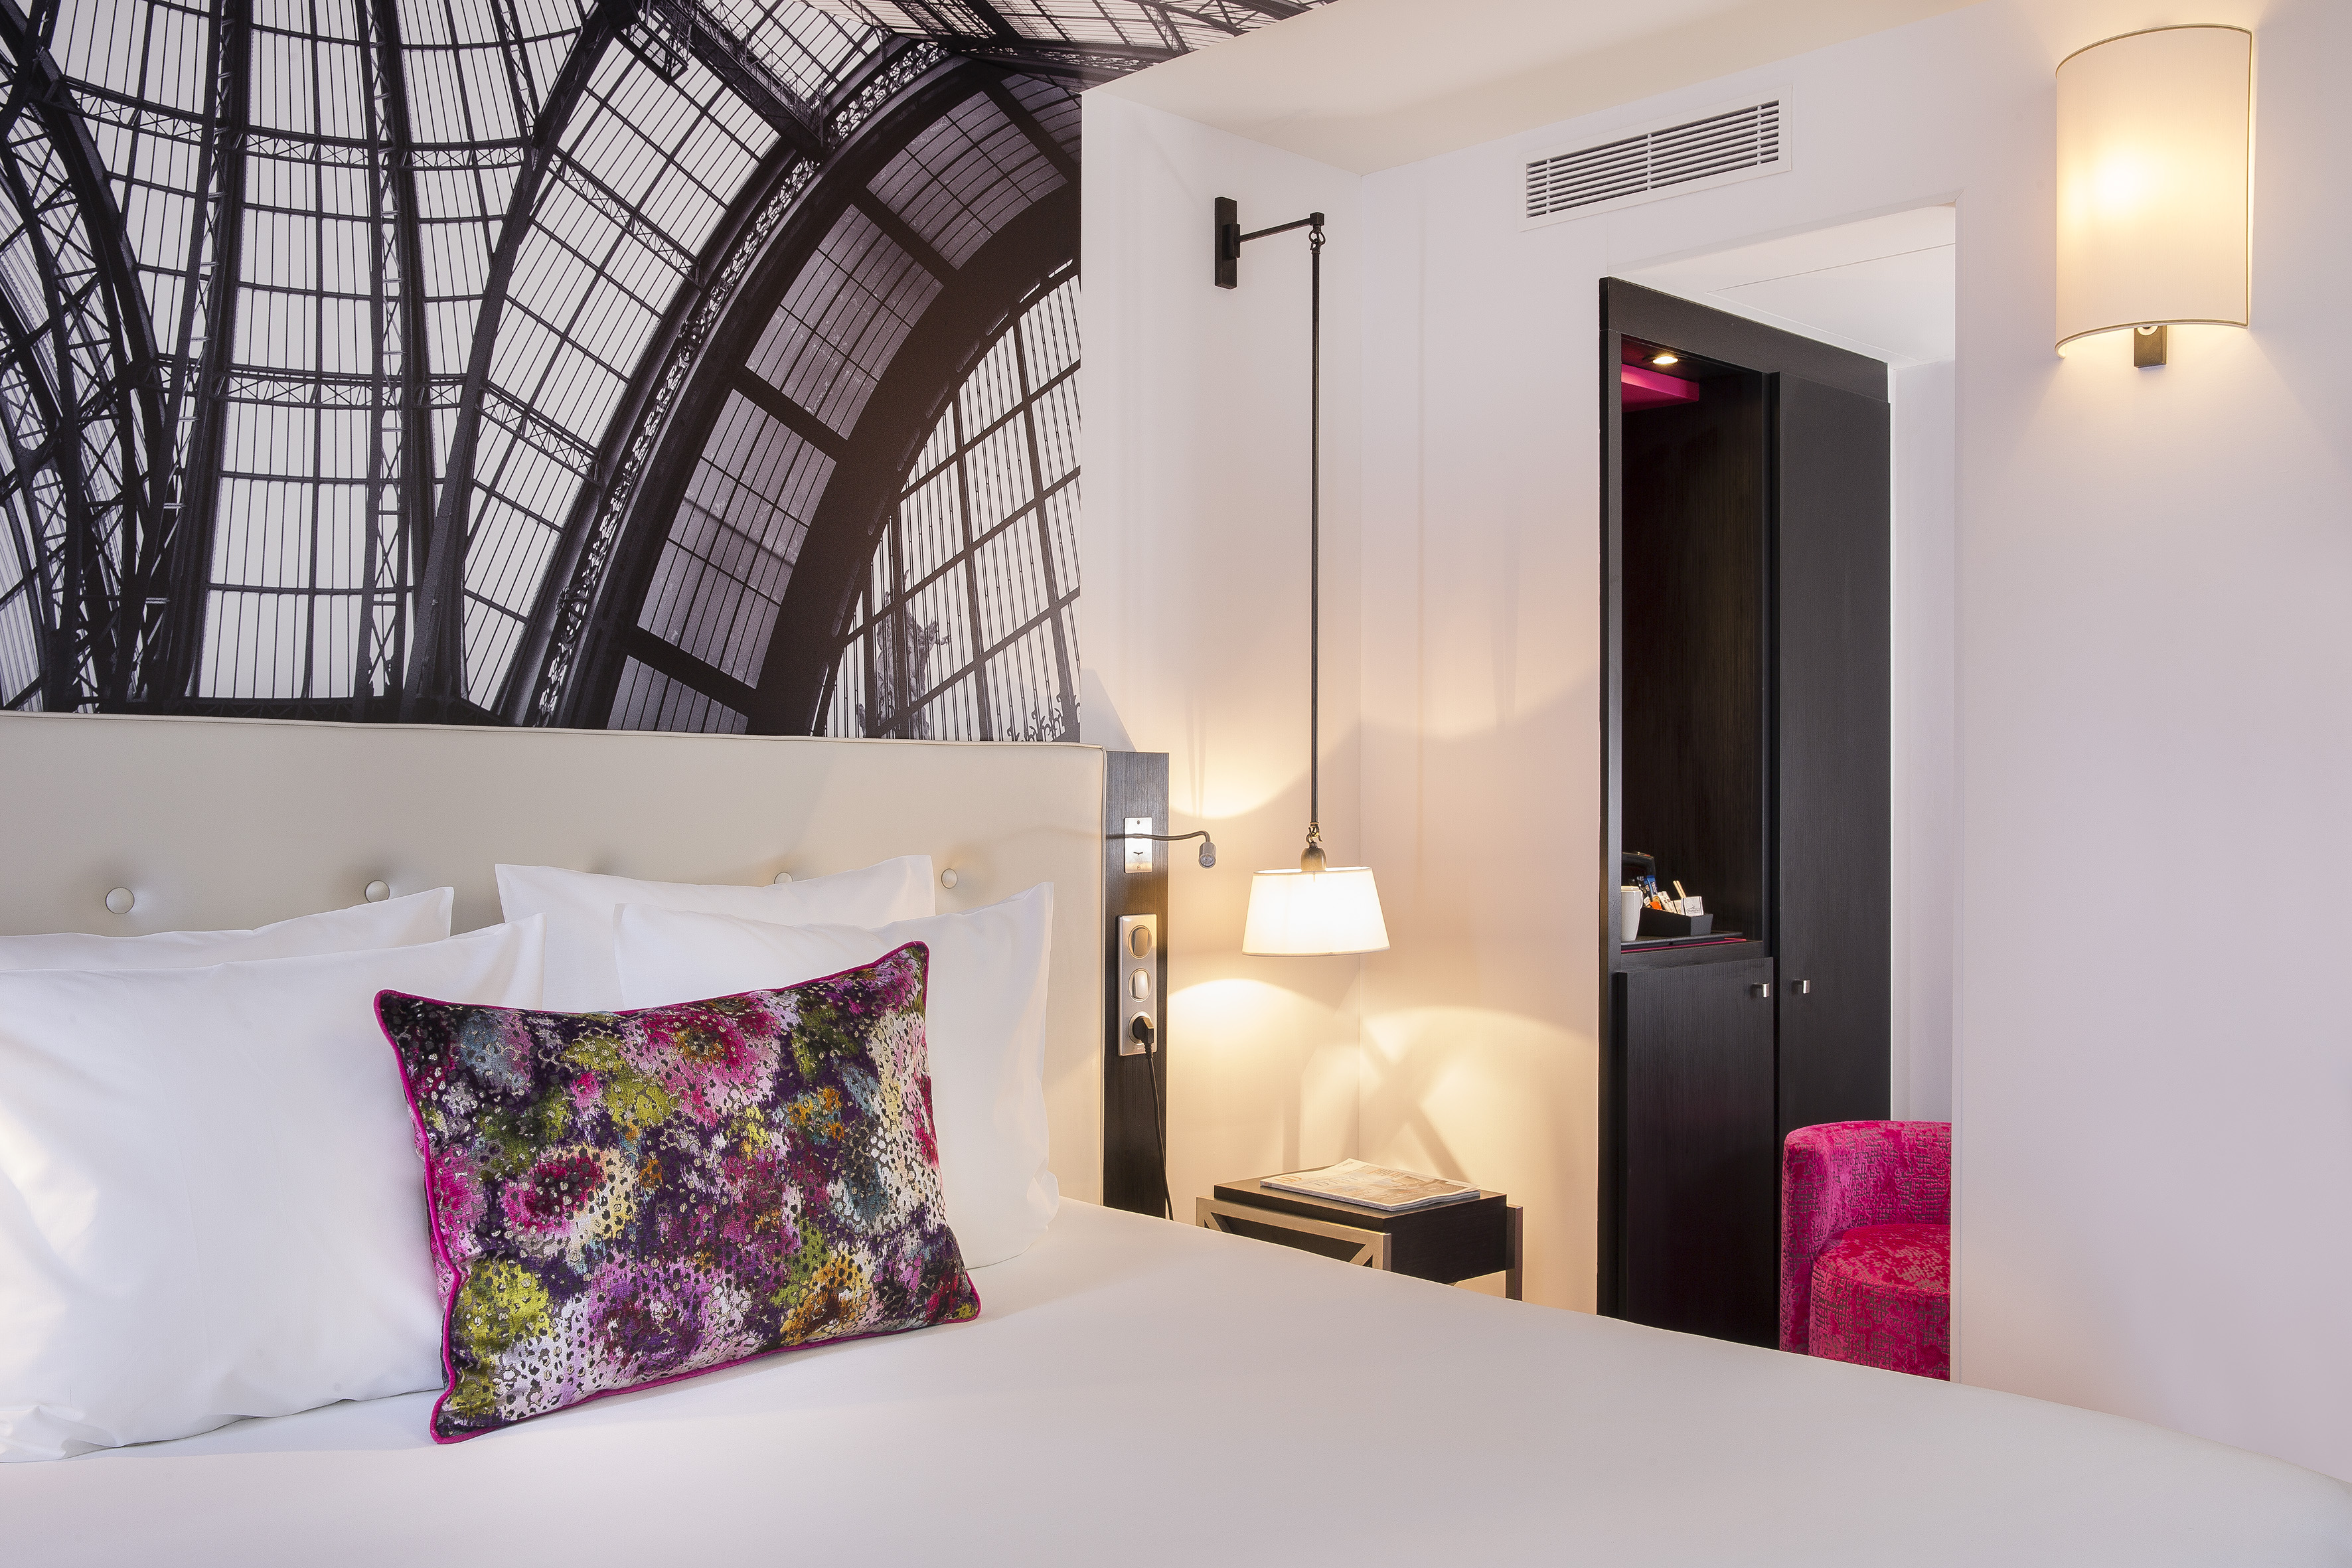 723/Gustave/chambre_/Cls/HOTEL_GUSTAVE_-_Classique_-_17.jpg